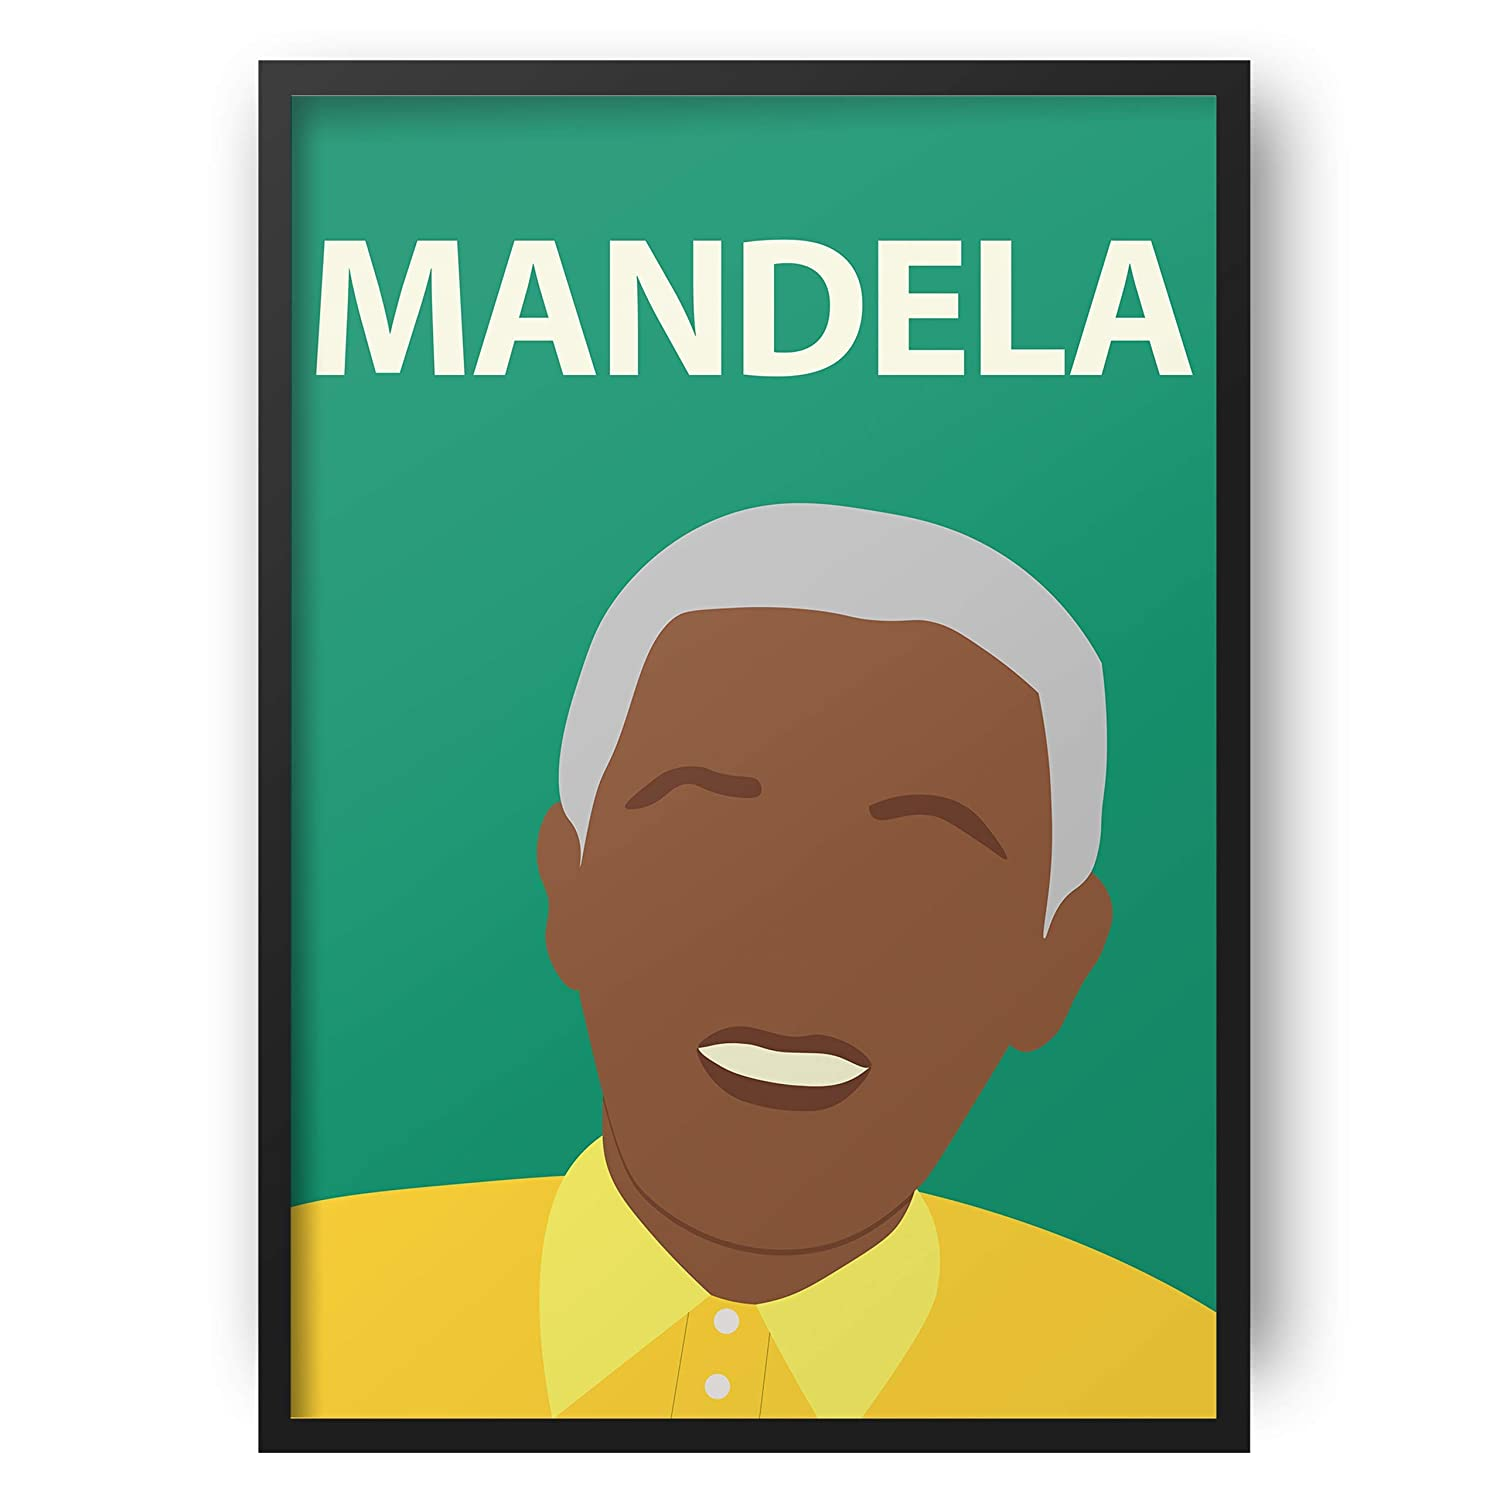 BUY 2 GET ANY 2 FREE A3 SIZE NELSON MANDELA POSTER ART PRINT A4